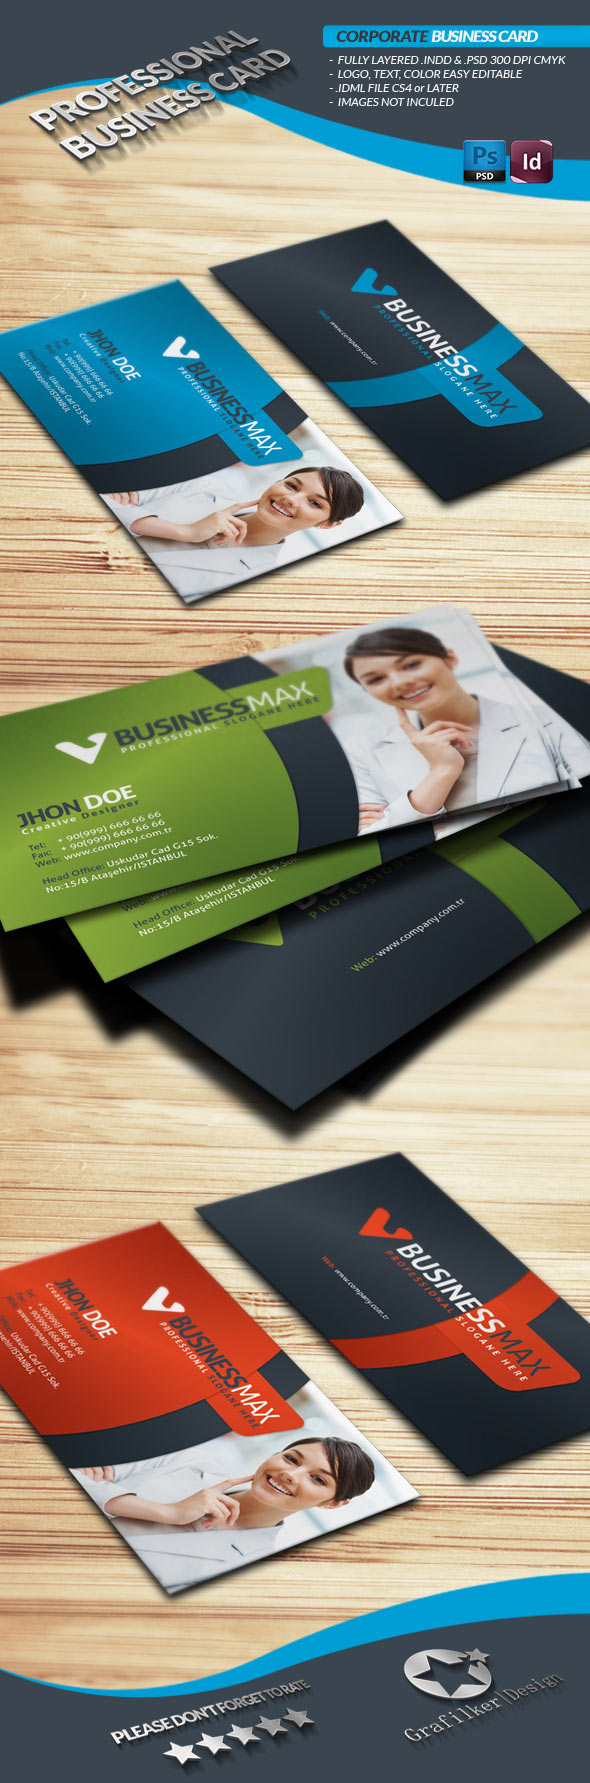 InDesign PremiumBusiness Card Template